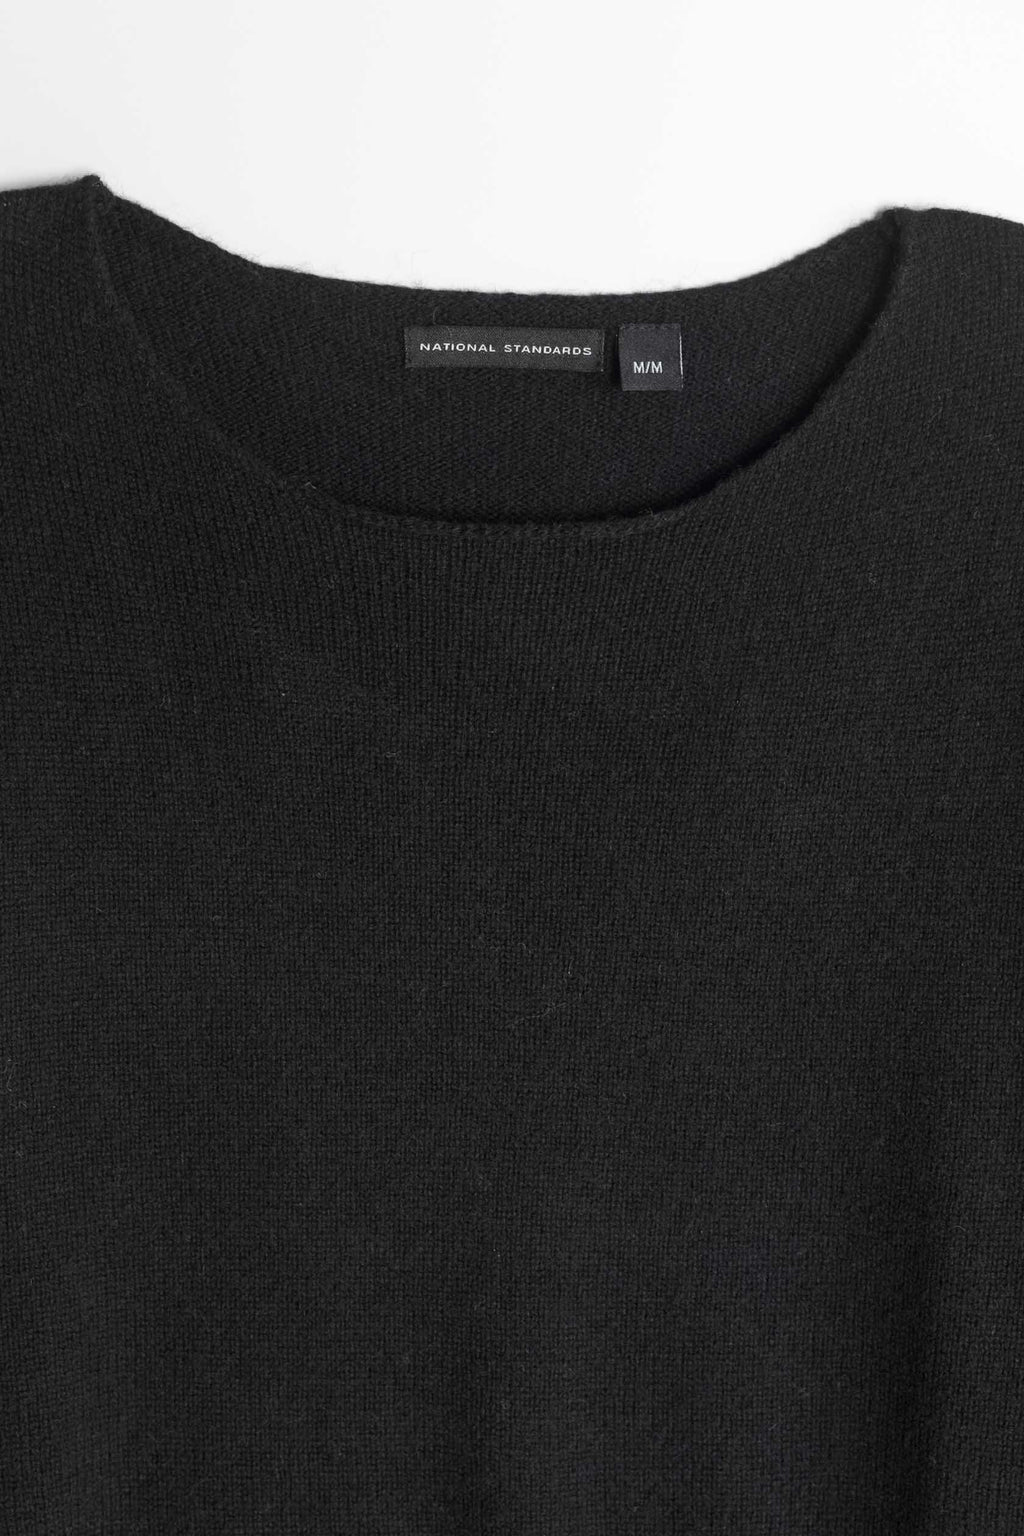 Lambswool Wide Neck in Black 02